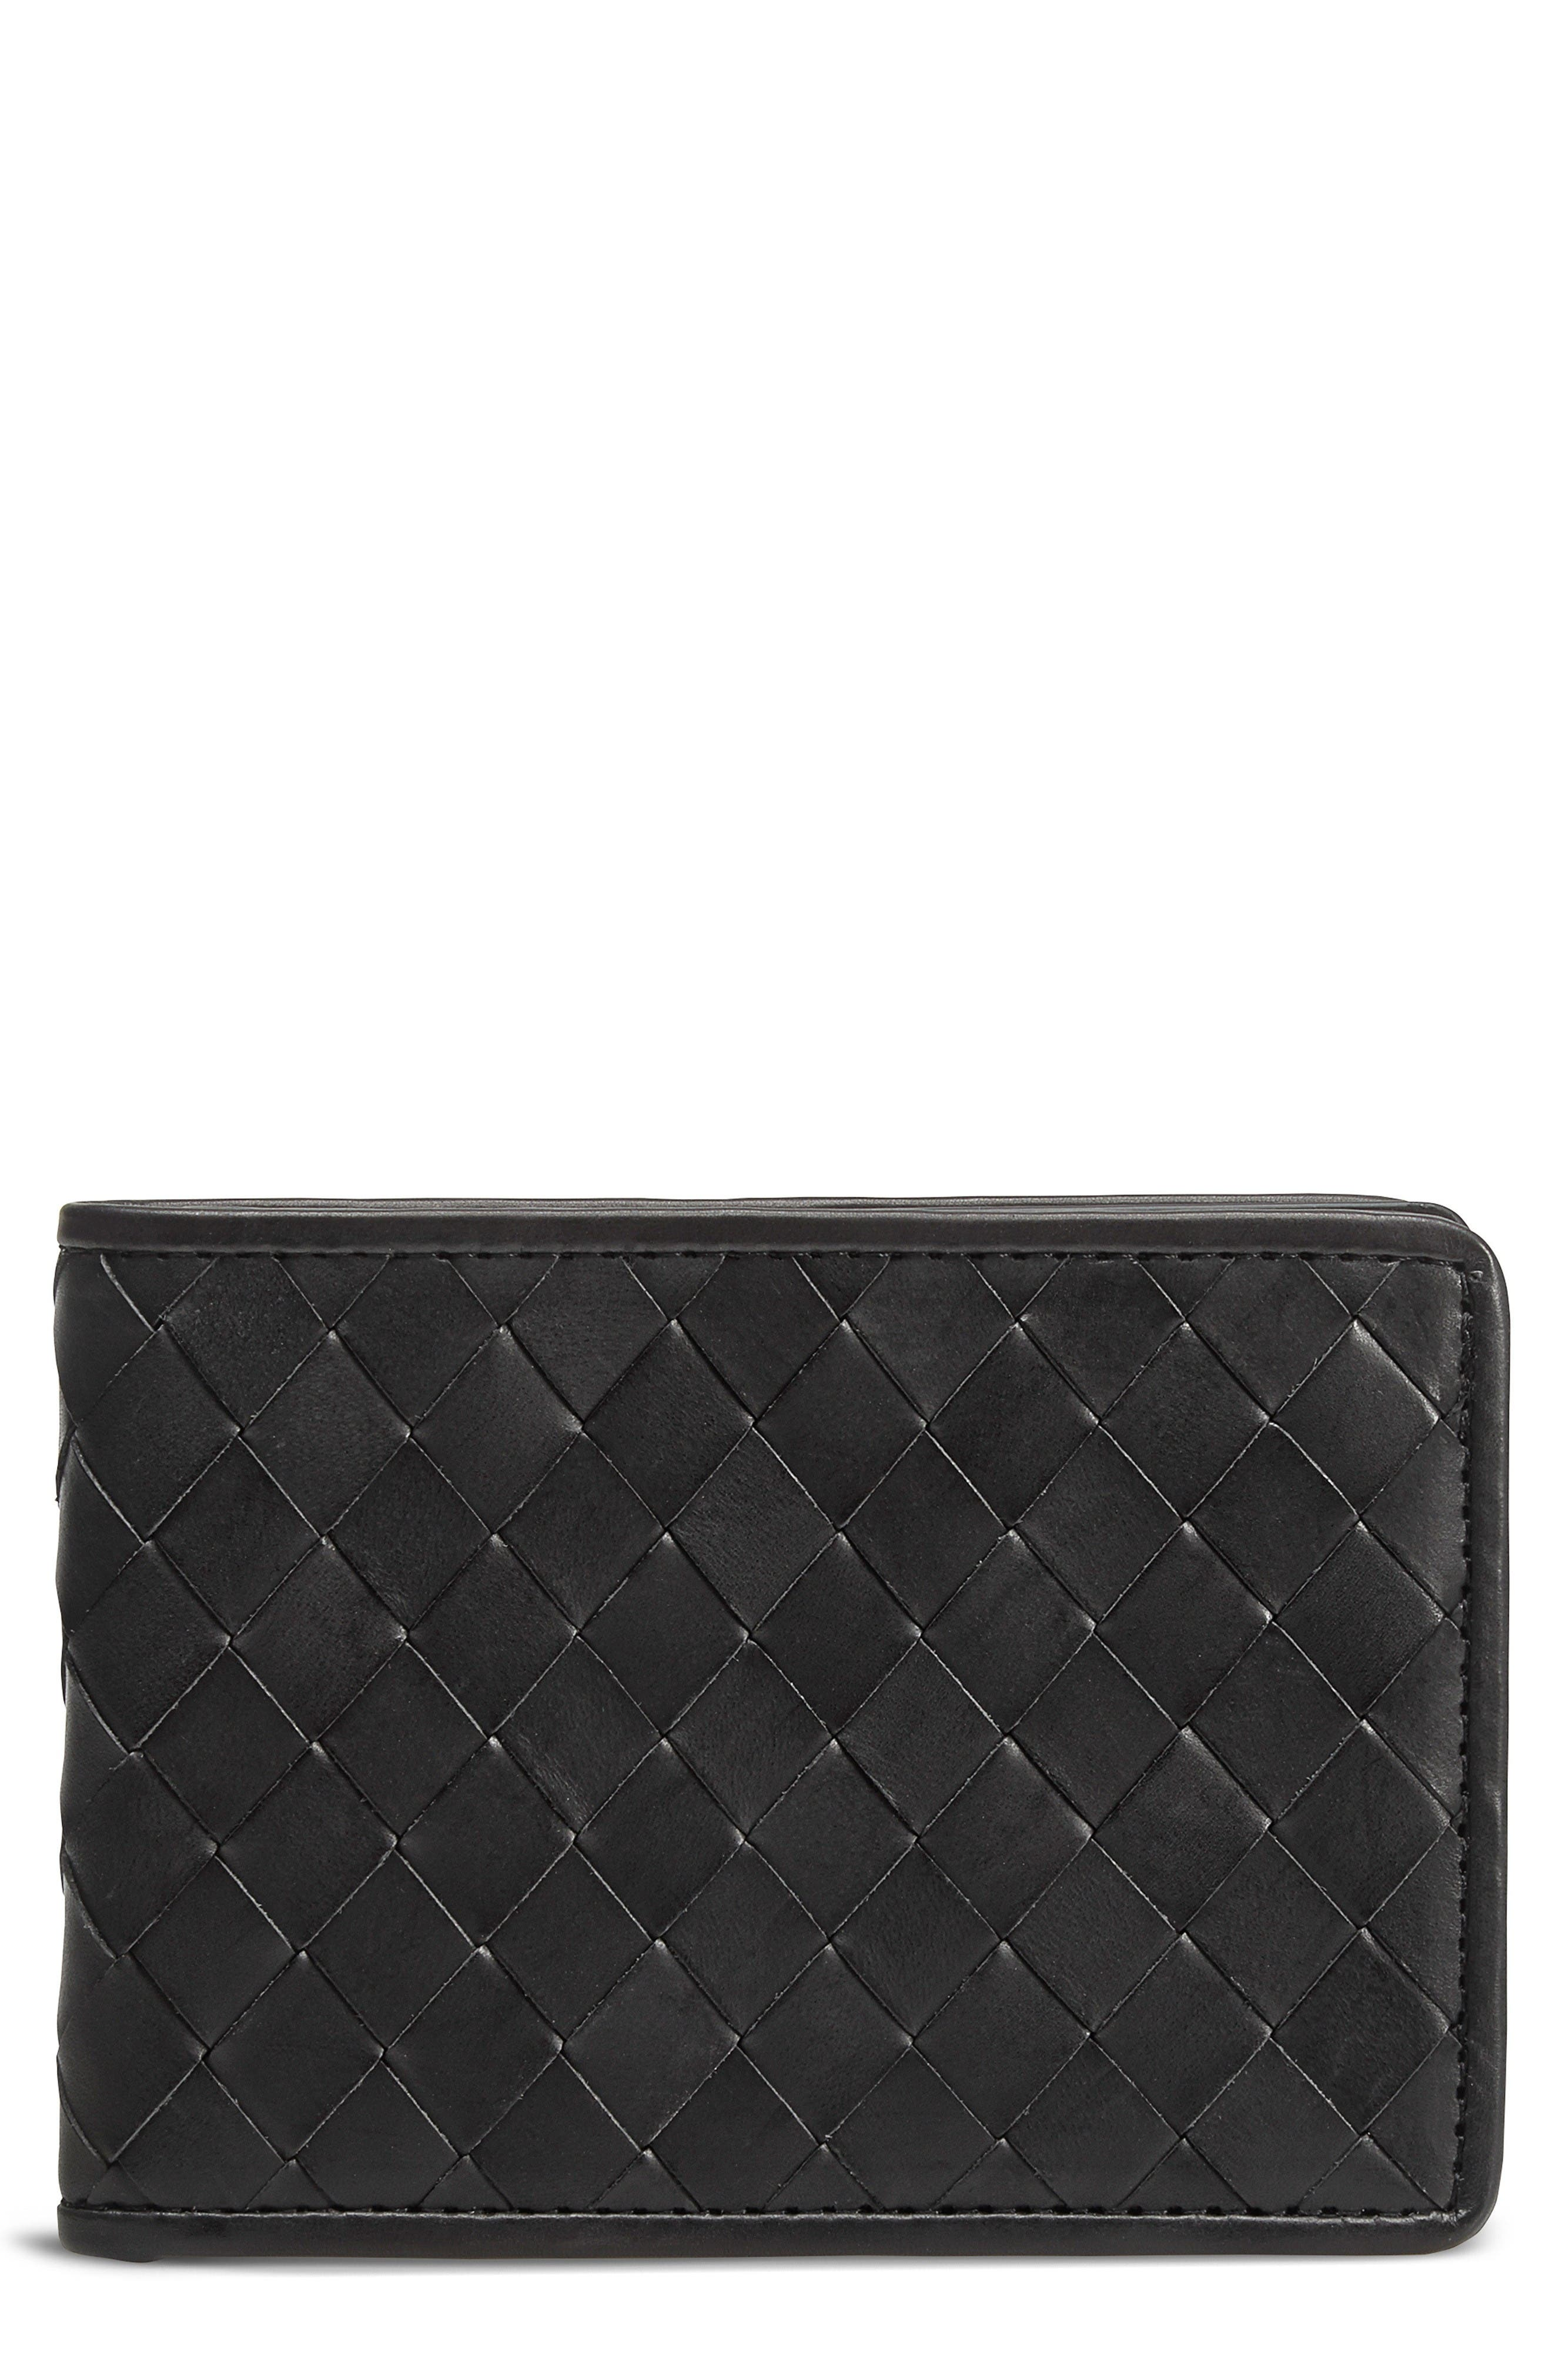 Woven Leather Wallet,                         Main,                         color, Black